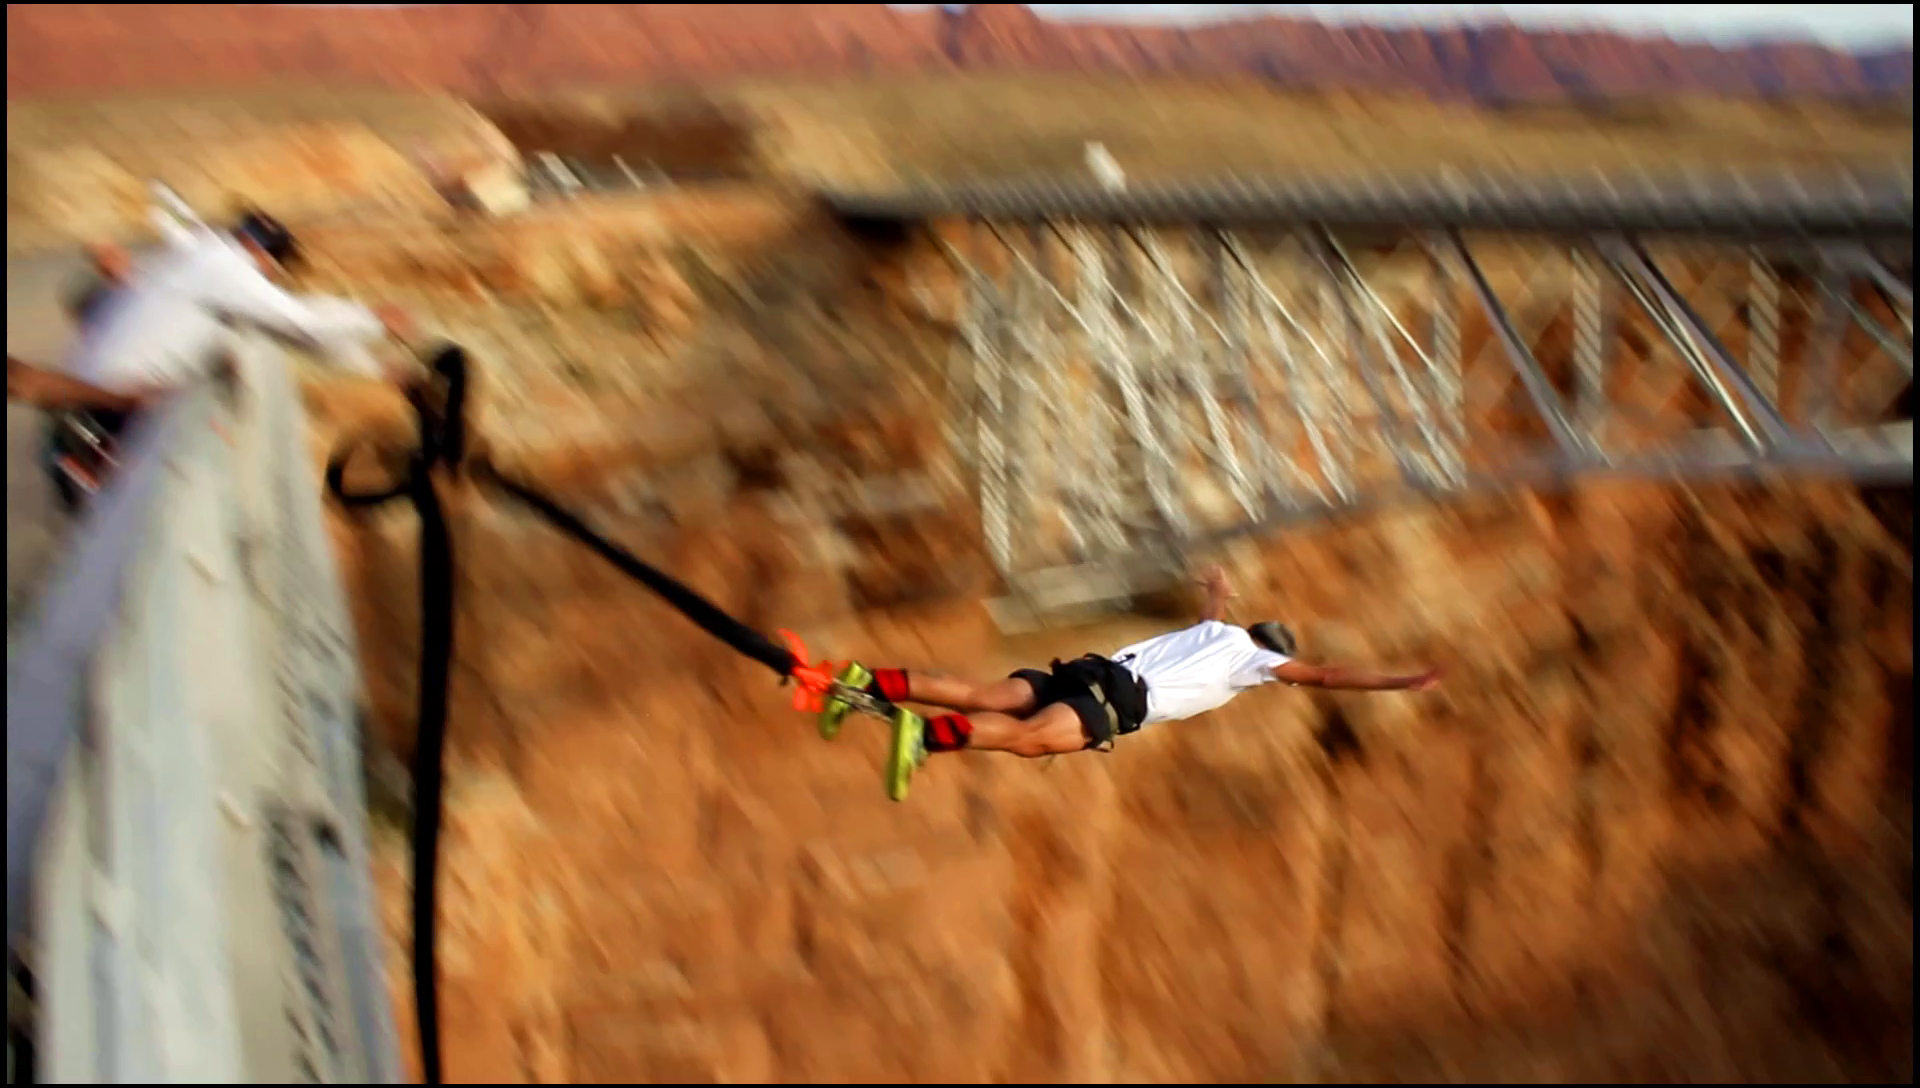 Navajo Bridge Bungee Jump - Snapshot taken from my Canon 7D. Filmed by Sean Crosby.